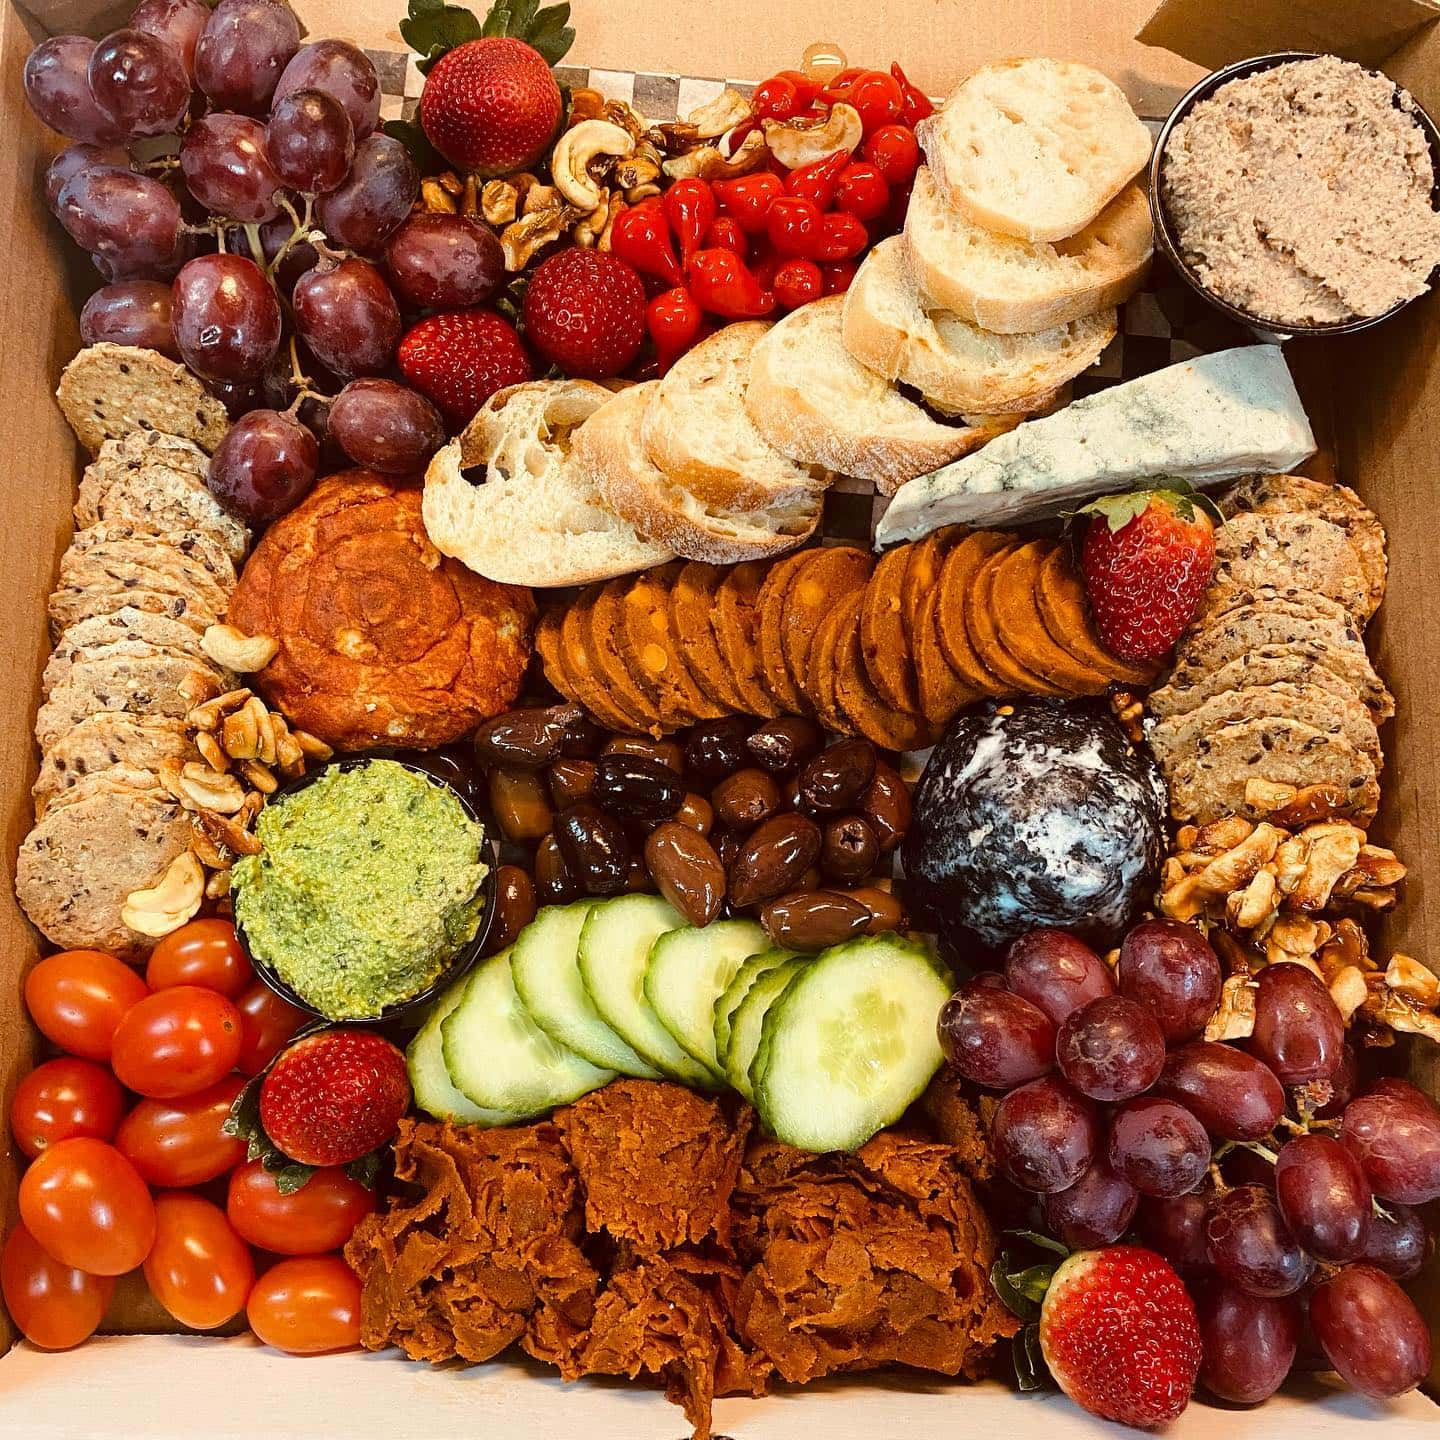 vegan restaurants charcuterie board with vegan cheese and crackers